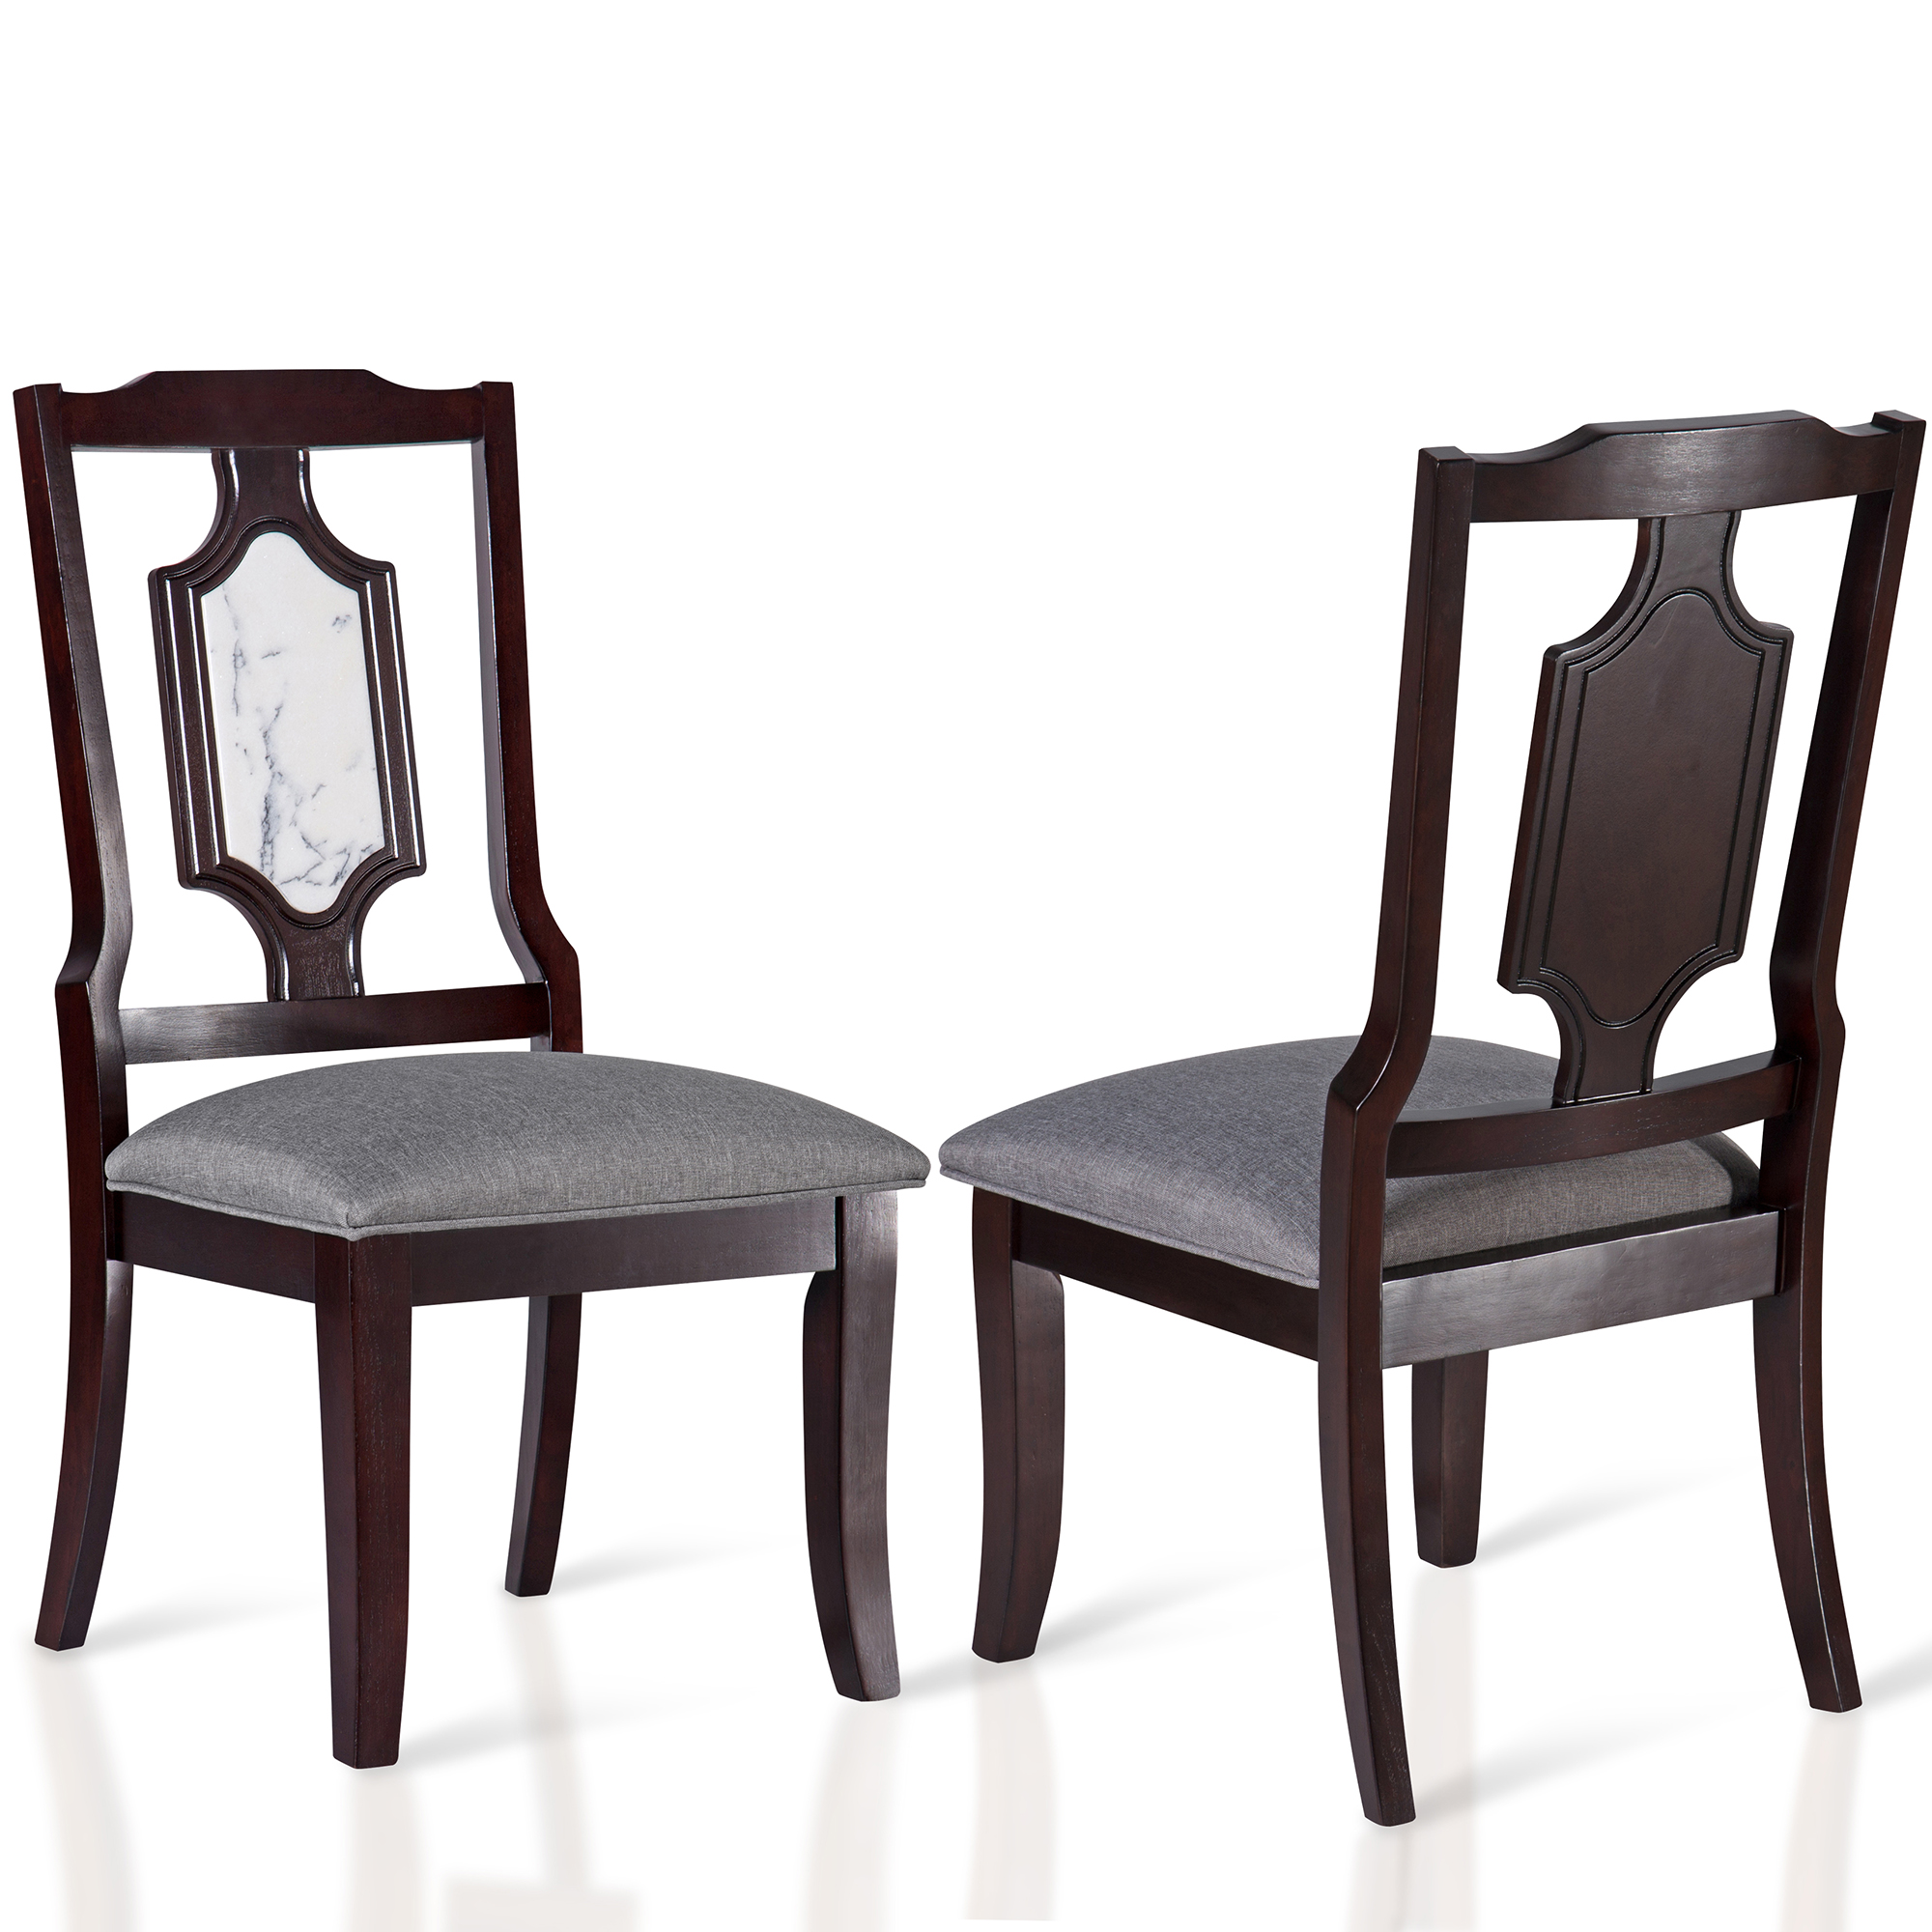 GranRest Marble & Wood-Seat Side Chair Set, White